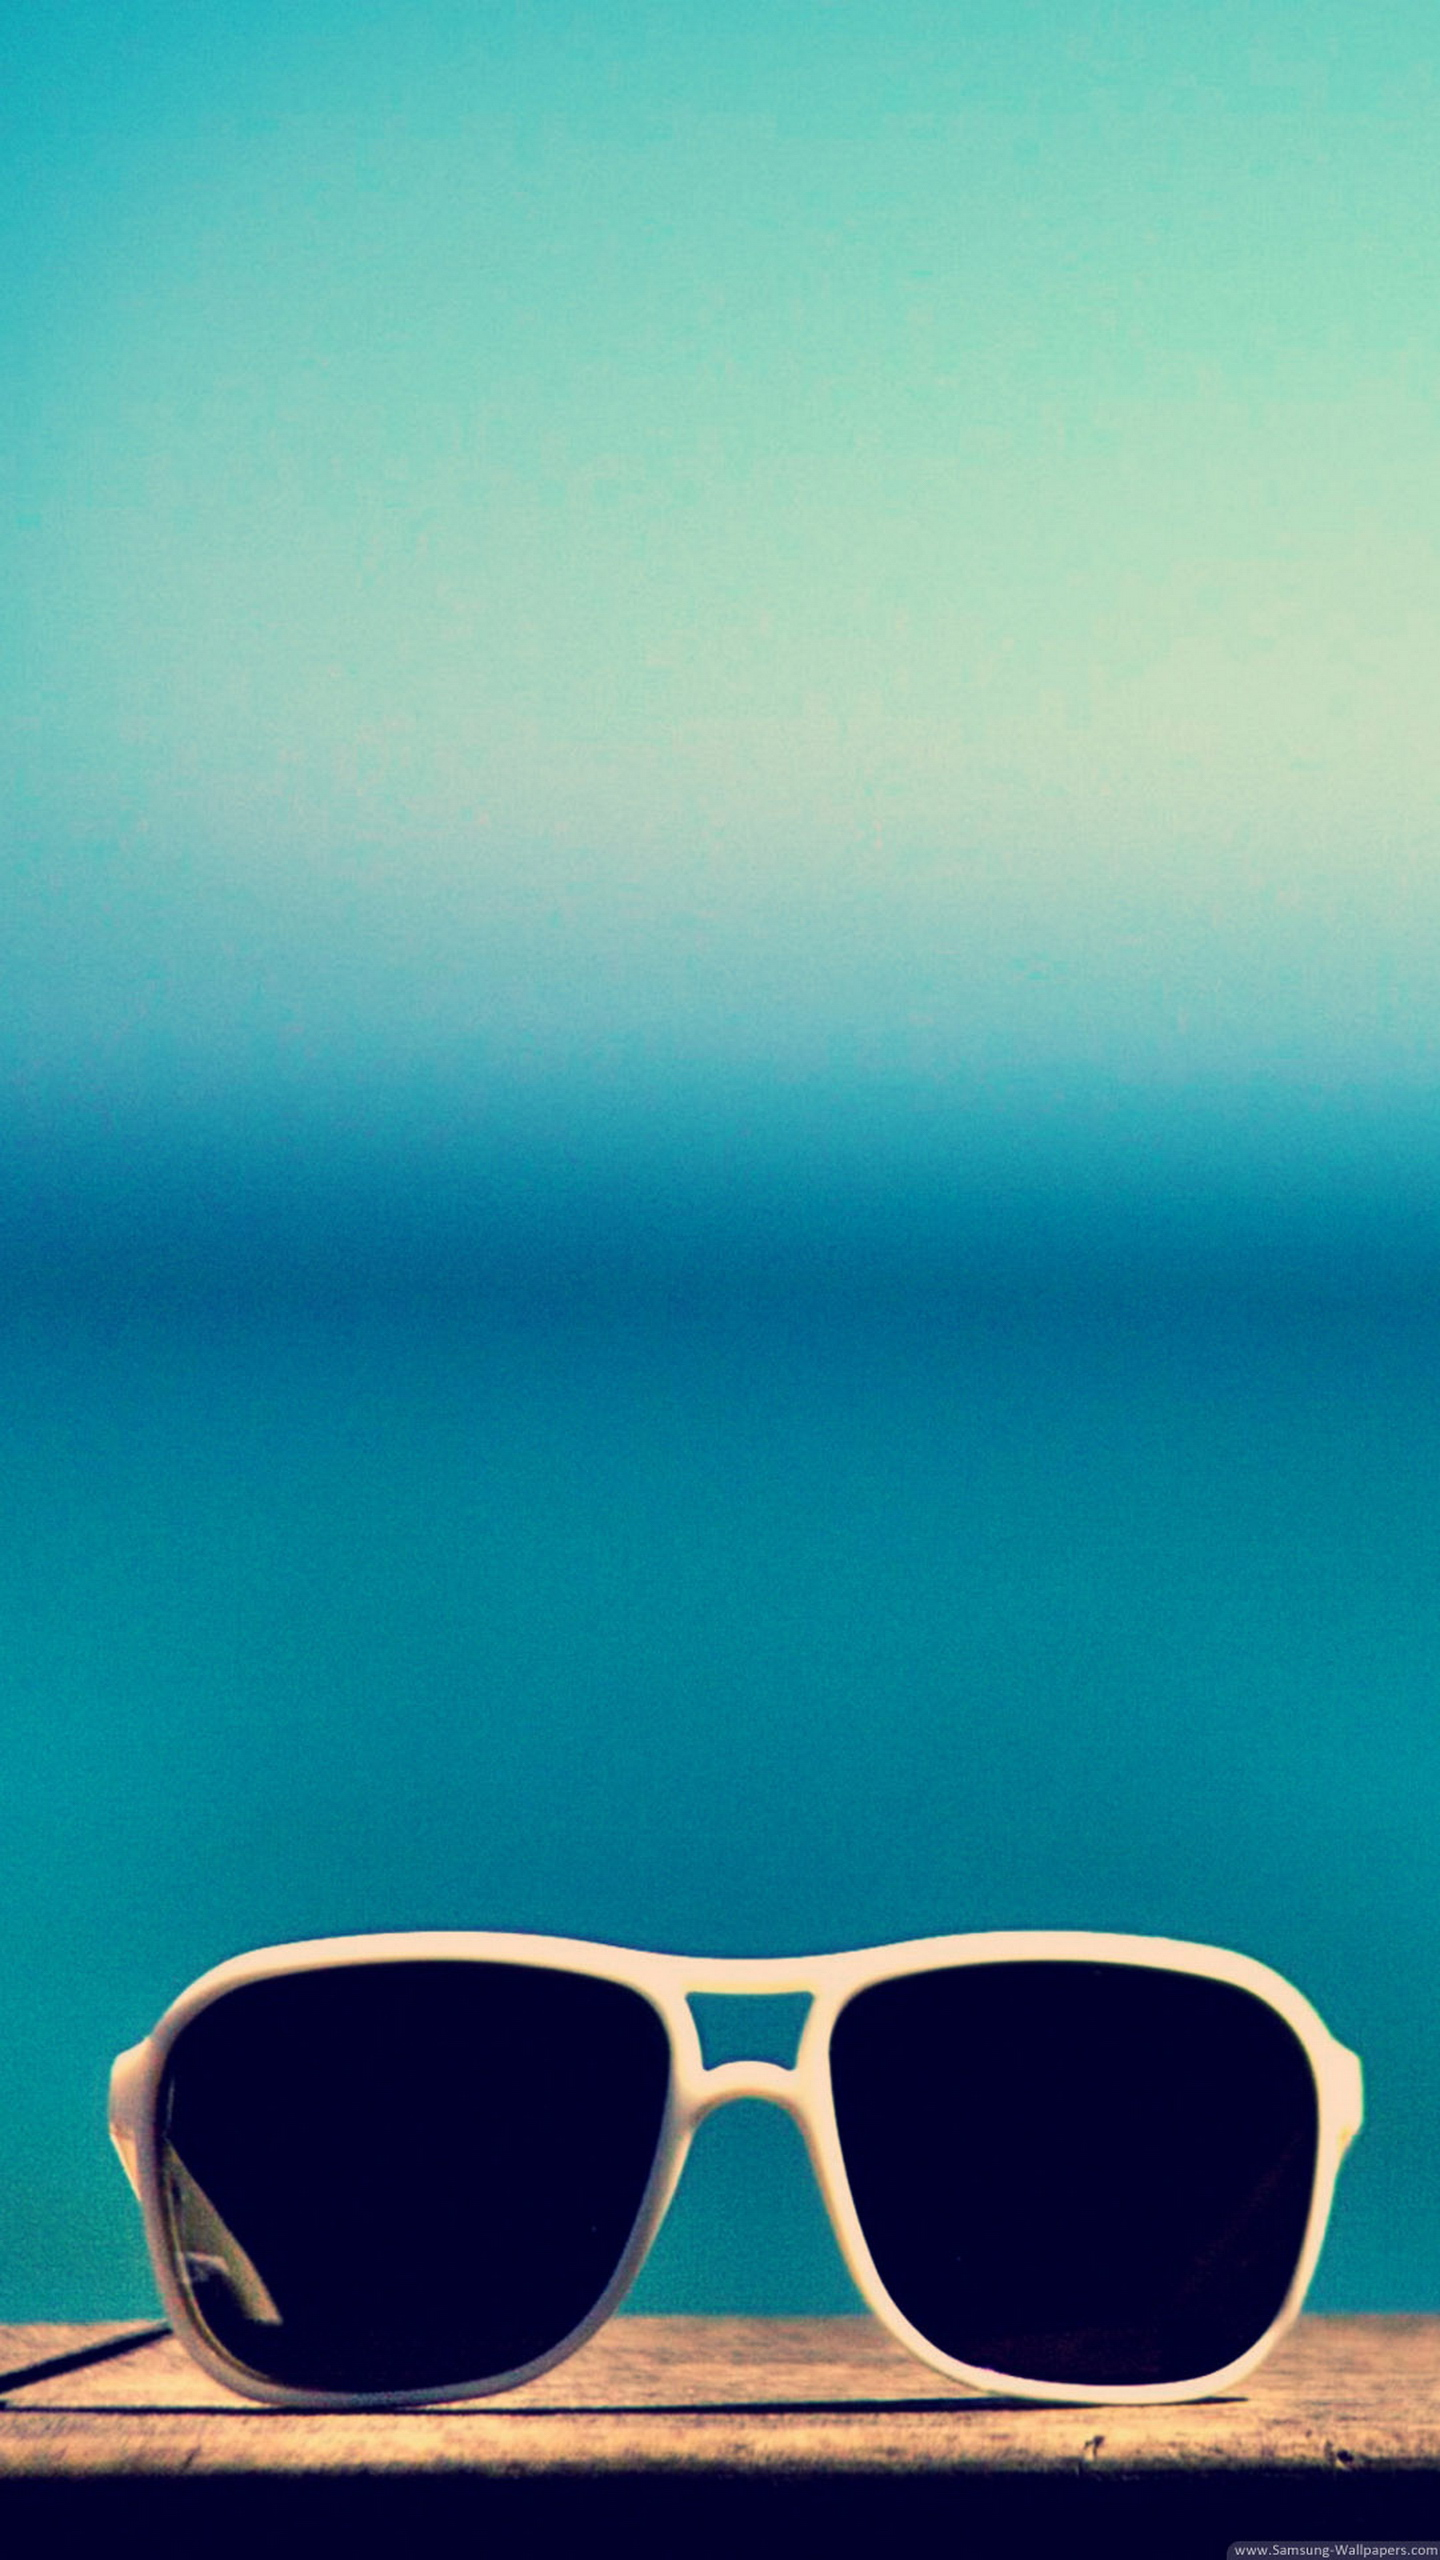 Free Download Cool Hipster Sunglasses Lock Screen 14402560 Samsung Galaxy Note 4 1440x2560 For Your Desktop Mobile Tablet Explore 50 Cool Lock Screen Wallpapers Screen Pictures For Wallpaper Iphone